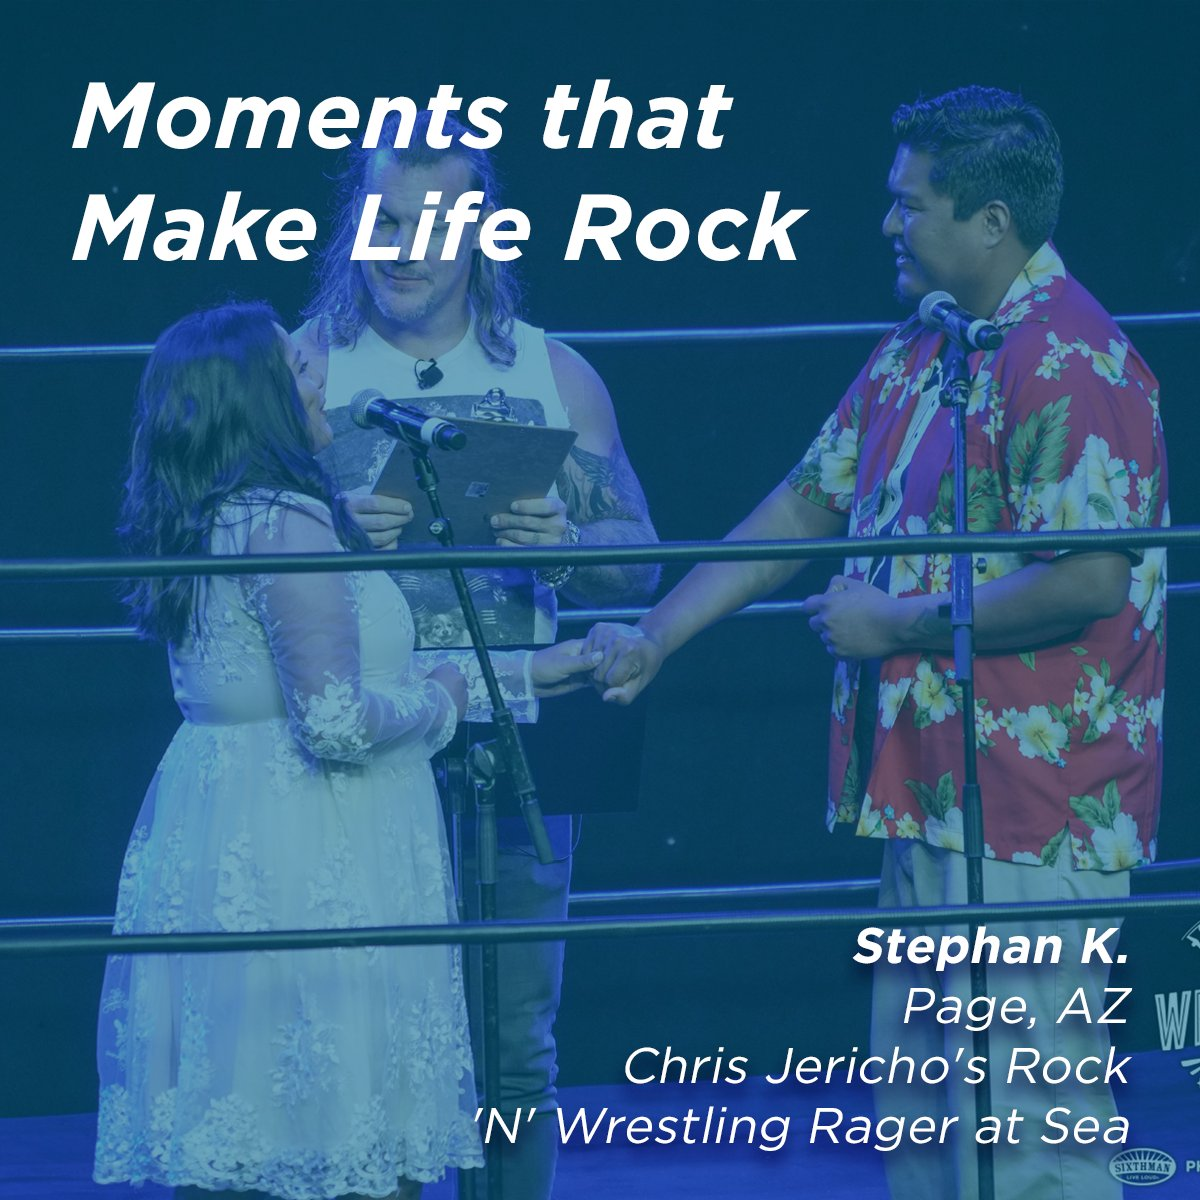 To think that we were going to be married inside an actual wrestling ring, by Chris Jericho on a cruise in front of other wrestling fans is something that I never would have thought would ever happen. - Stephan K. sixthman.net/moments #SXMLiveLoud